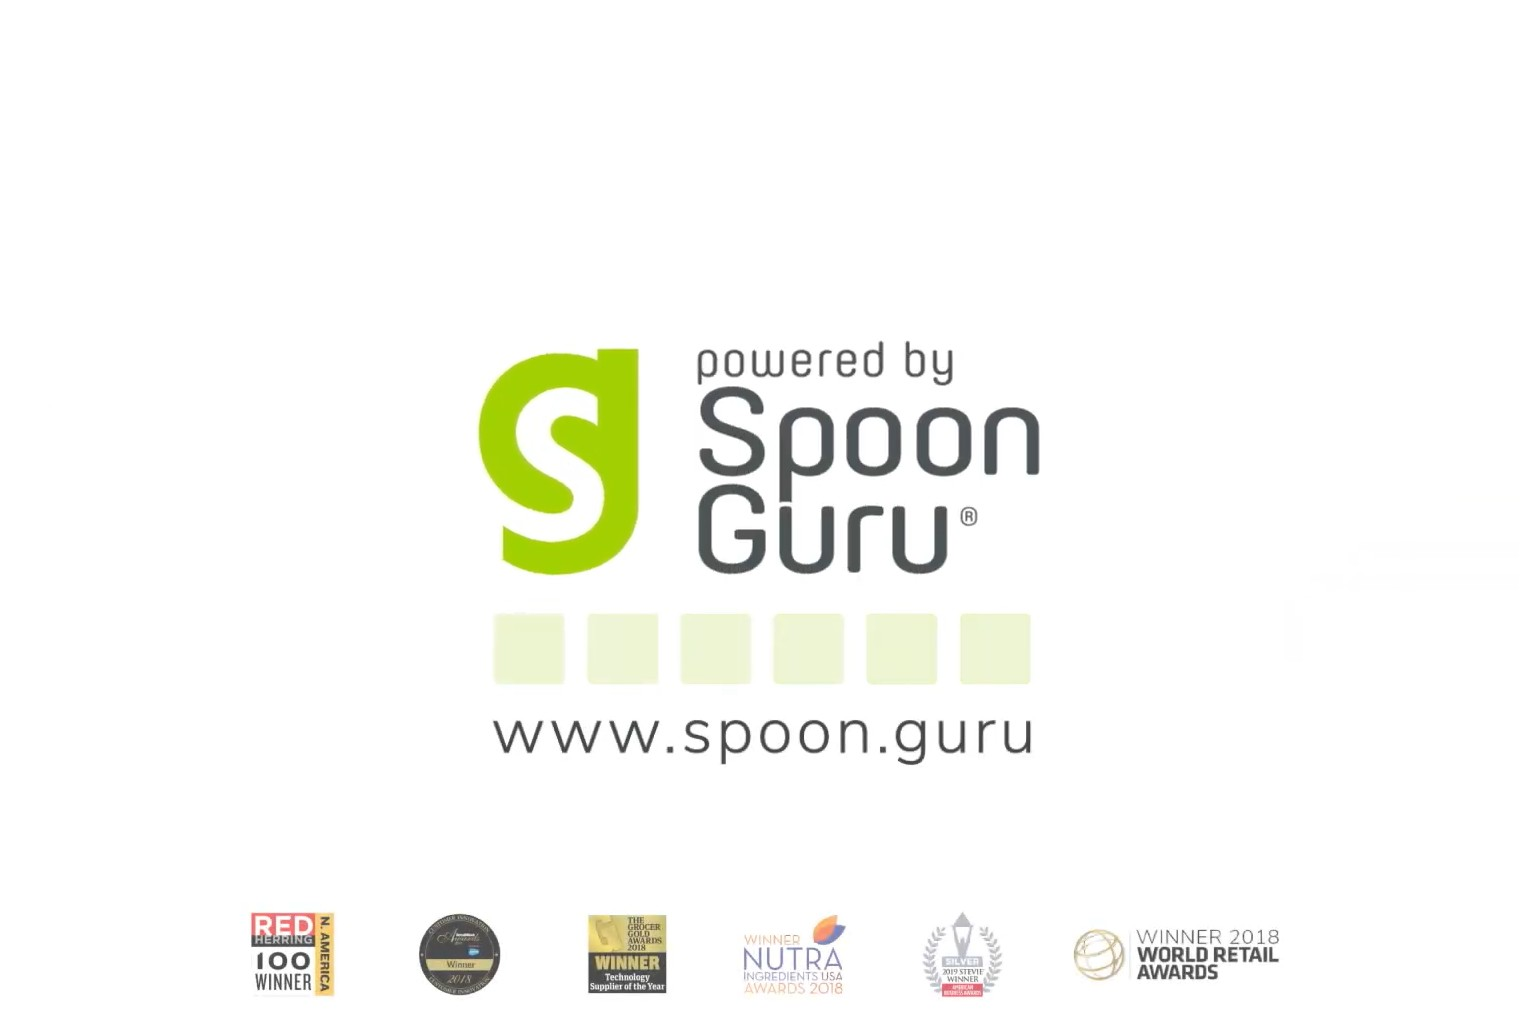 Spoon Guru partners with Woolworths, Jet com and Ahold